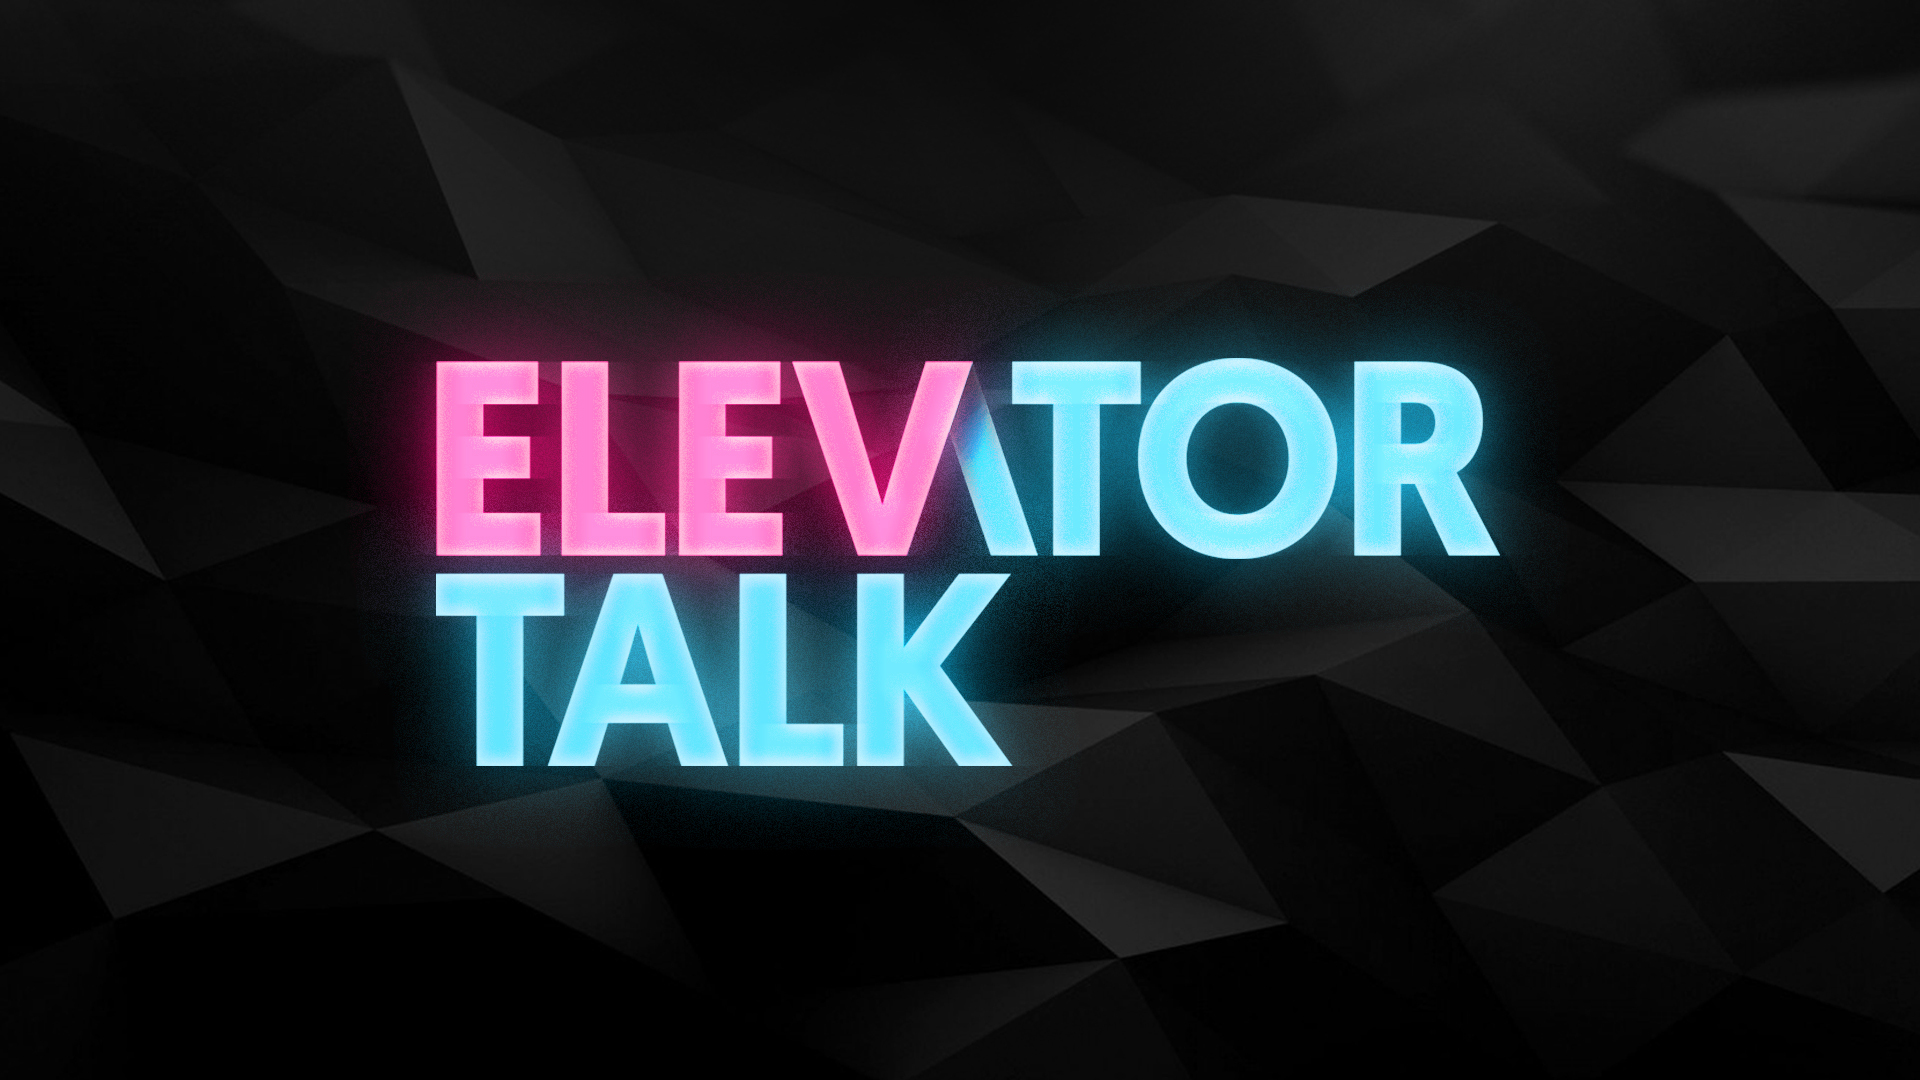 Elevator Talk Livestream Round 19: Spicegrove, On The Rocks Cocktails, reBLEND